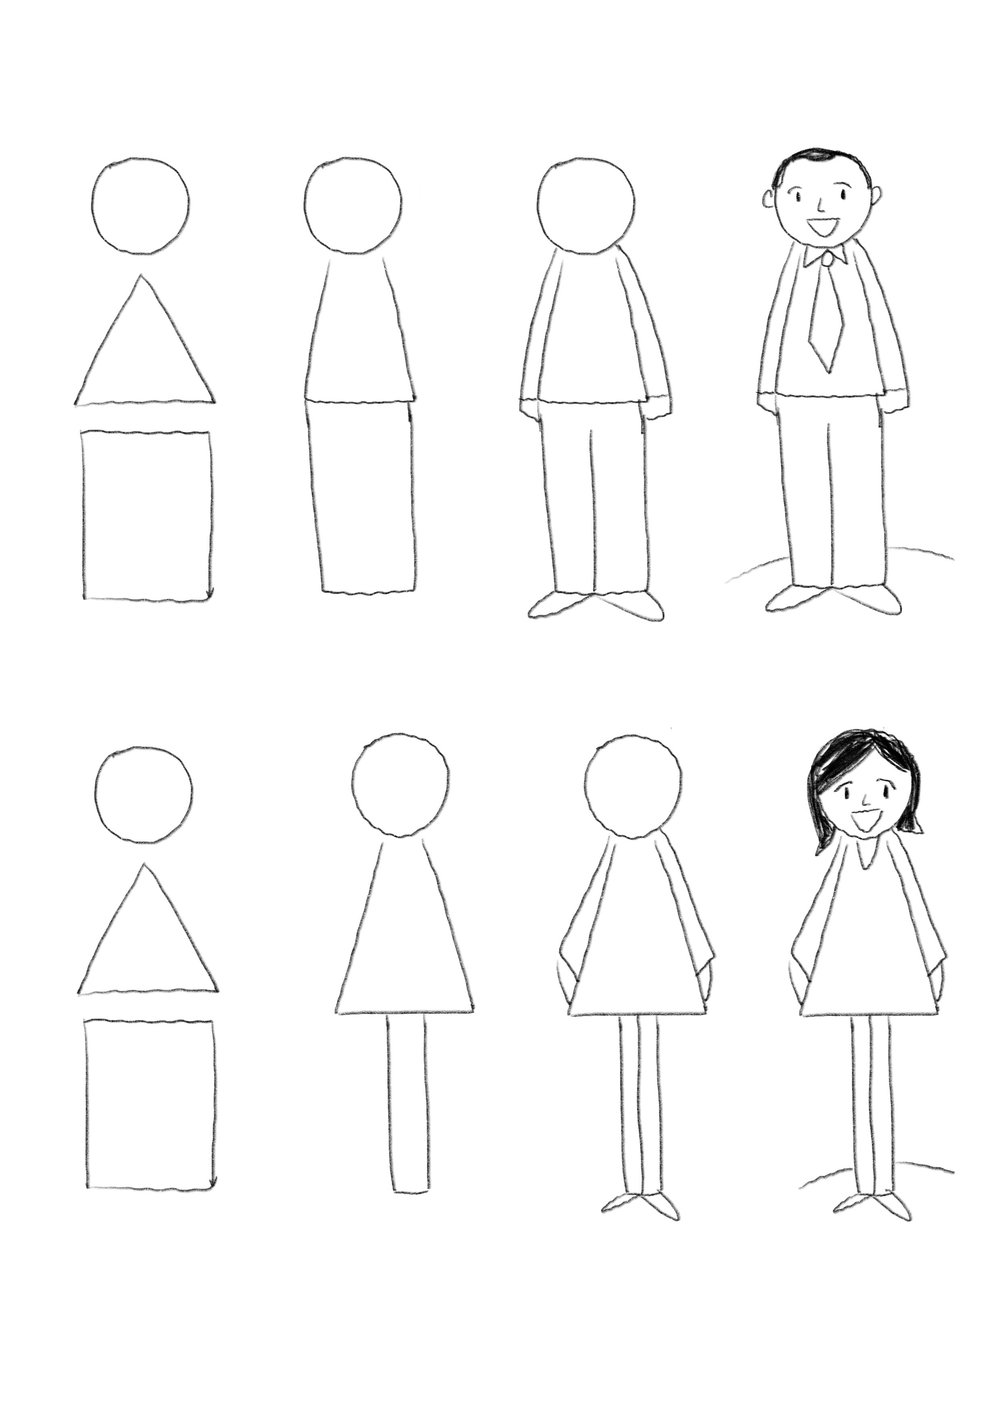 Uncategorized How To Draw Simple People simple drawing tip people graphic recording studio and a rectangle you can draw person once get this down start playing with hairstyles clothes is simple